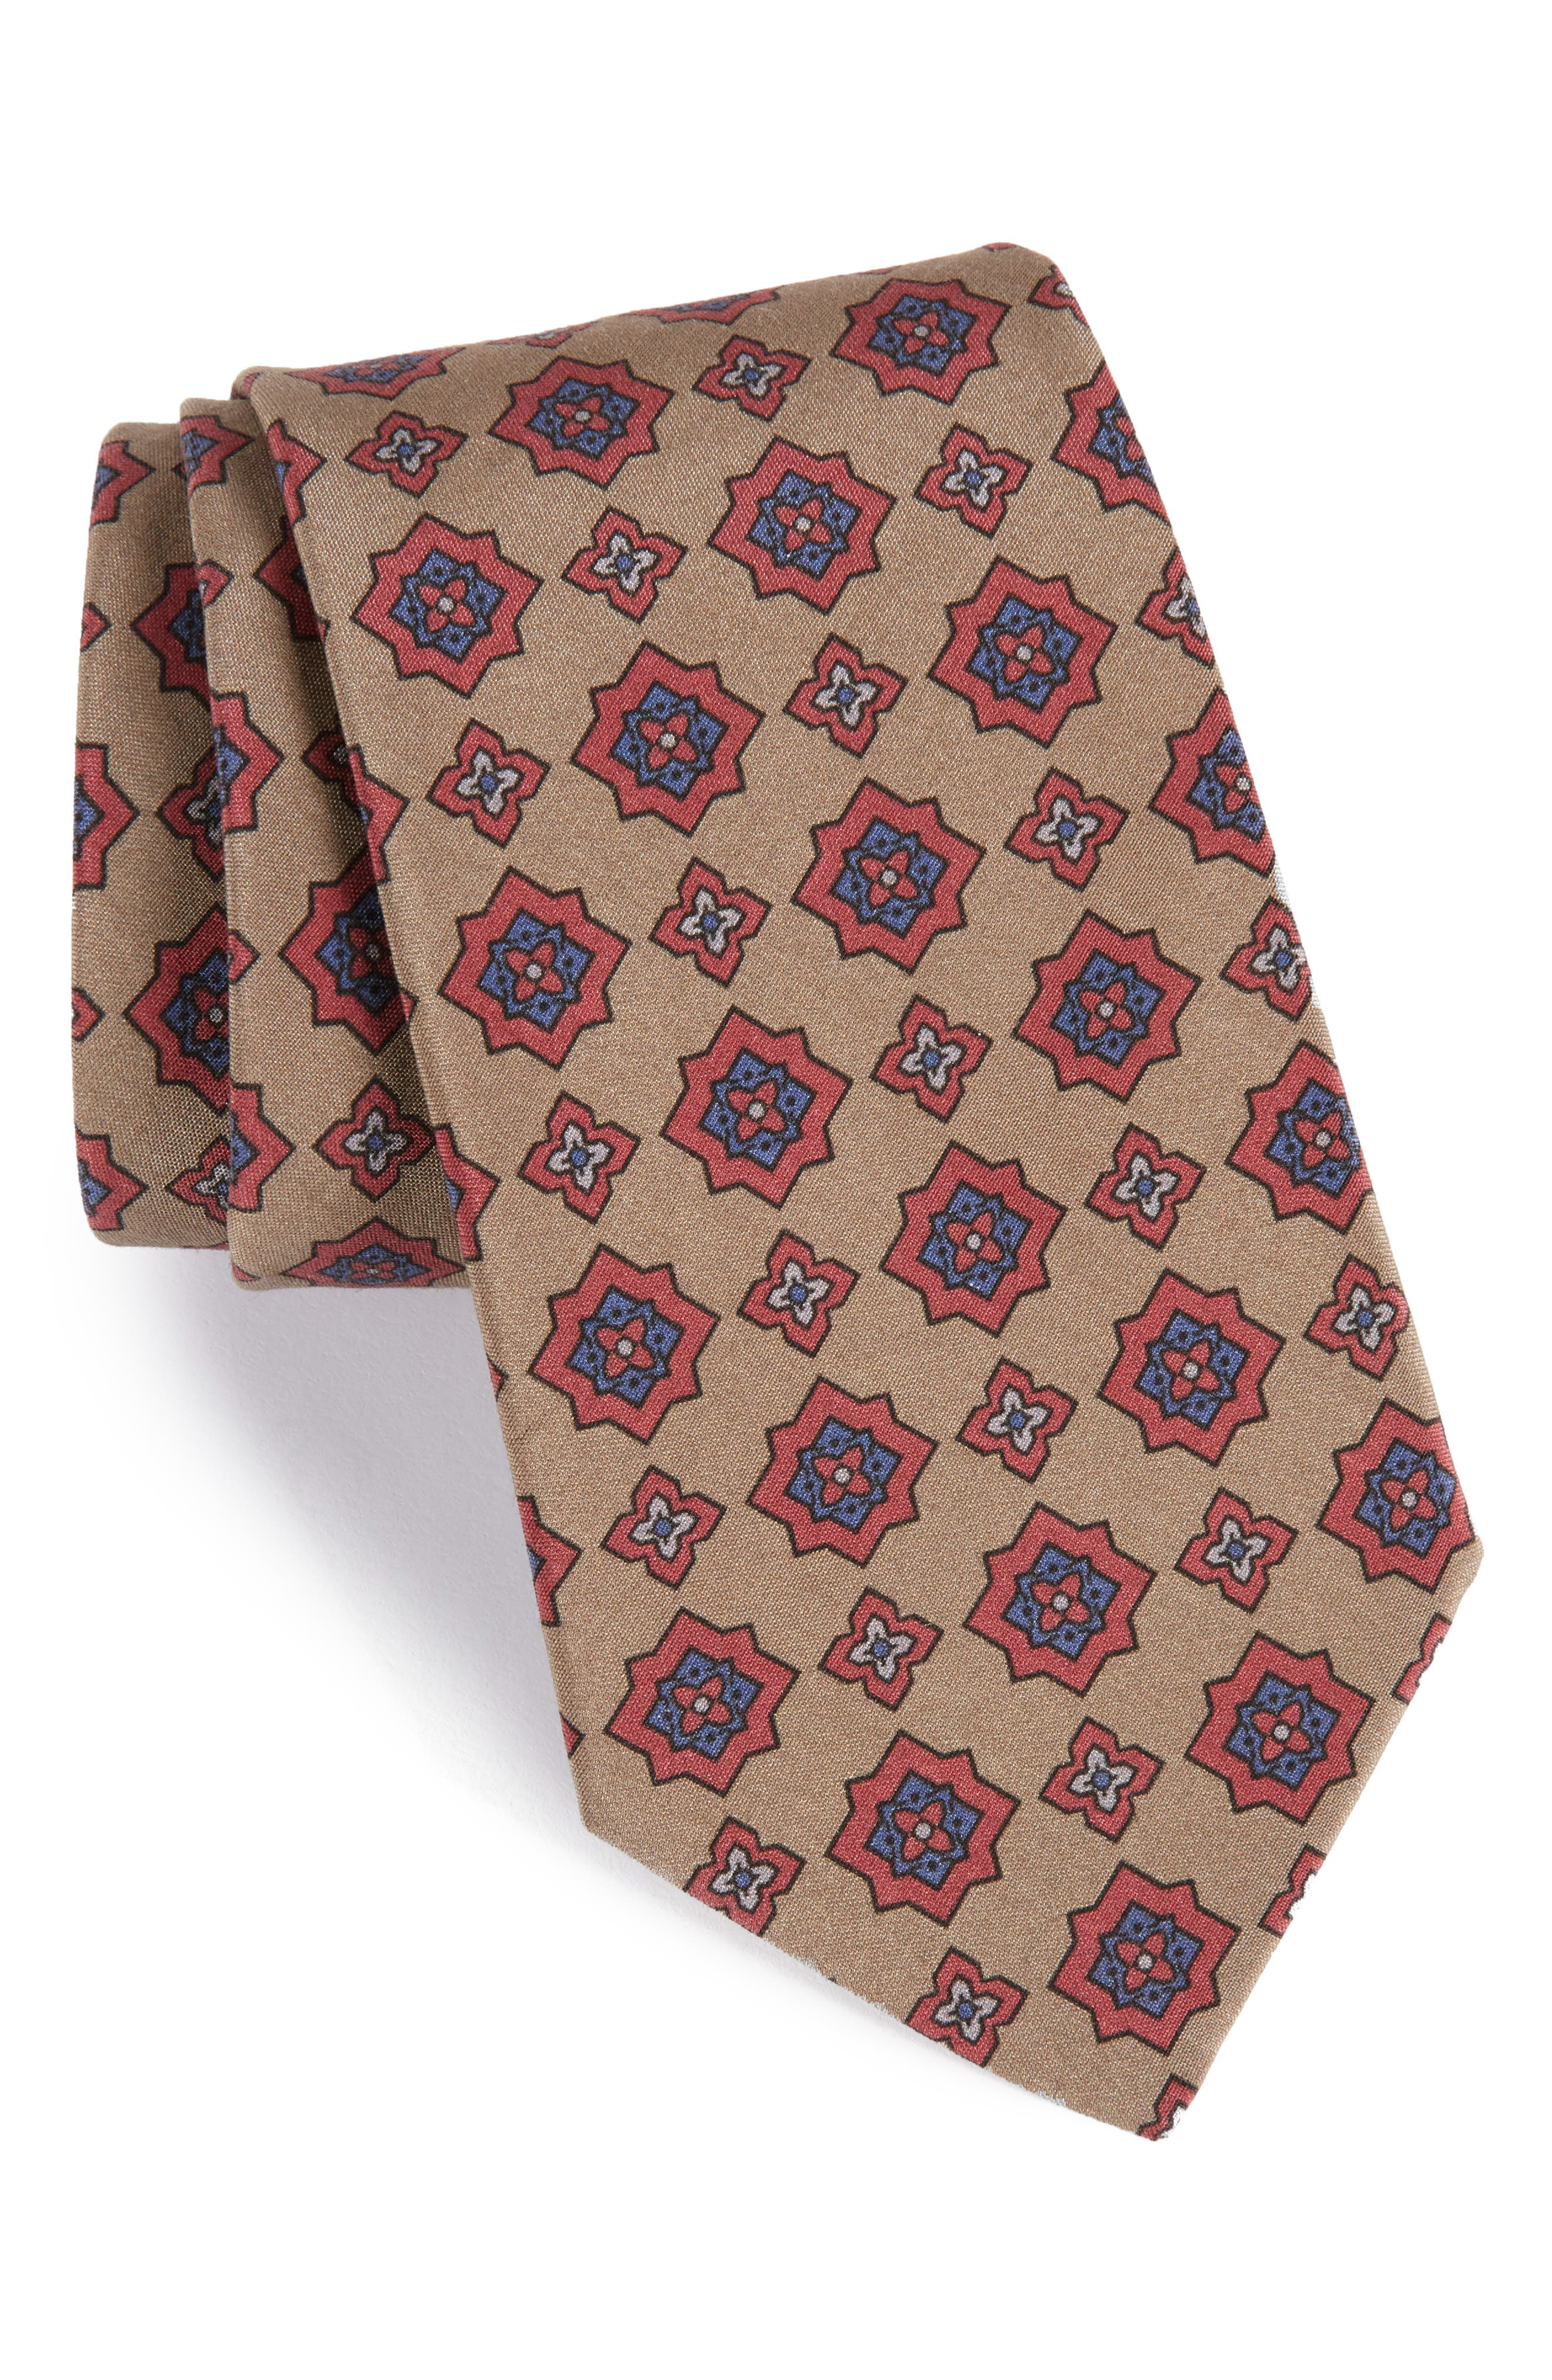 MICHAEL BASTIAN Medallion Silk Tie